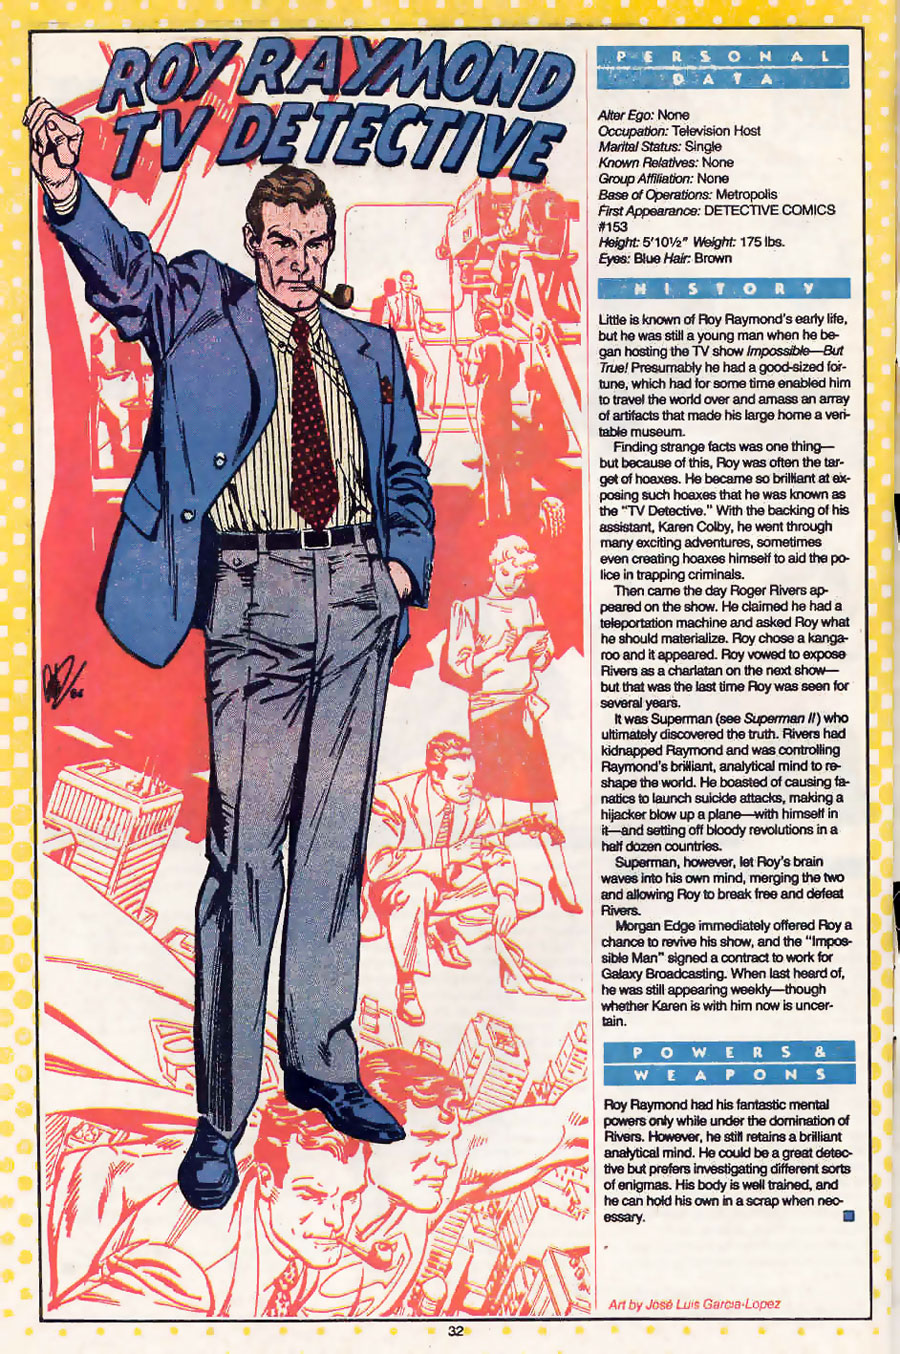 Roy Raymond Who's Who by Jose Luis Garcia-Lopez (Praise Be His Name)